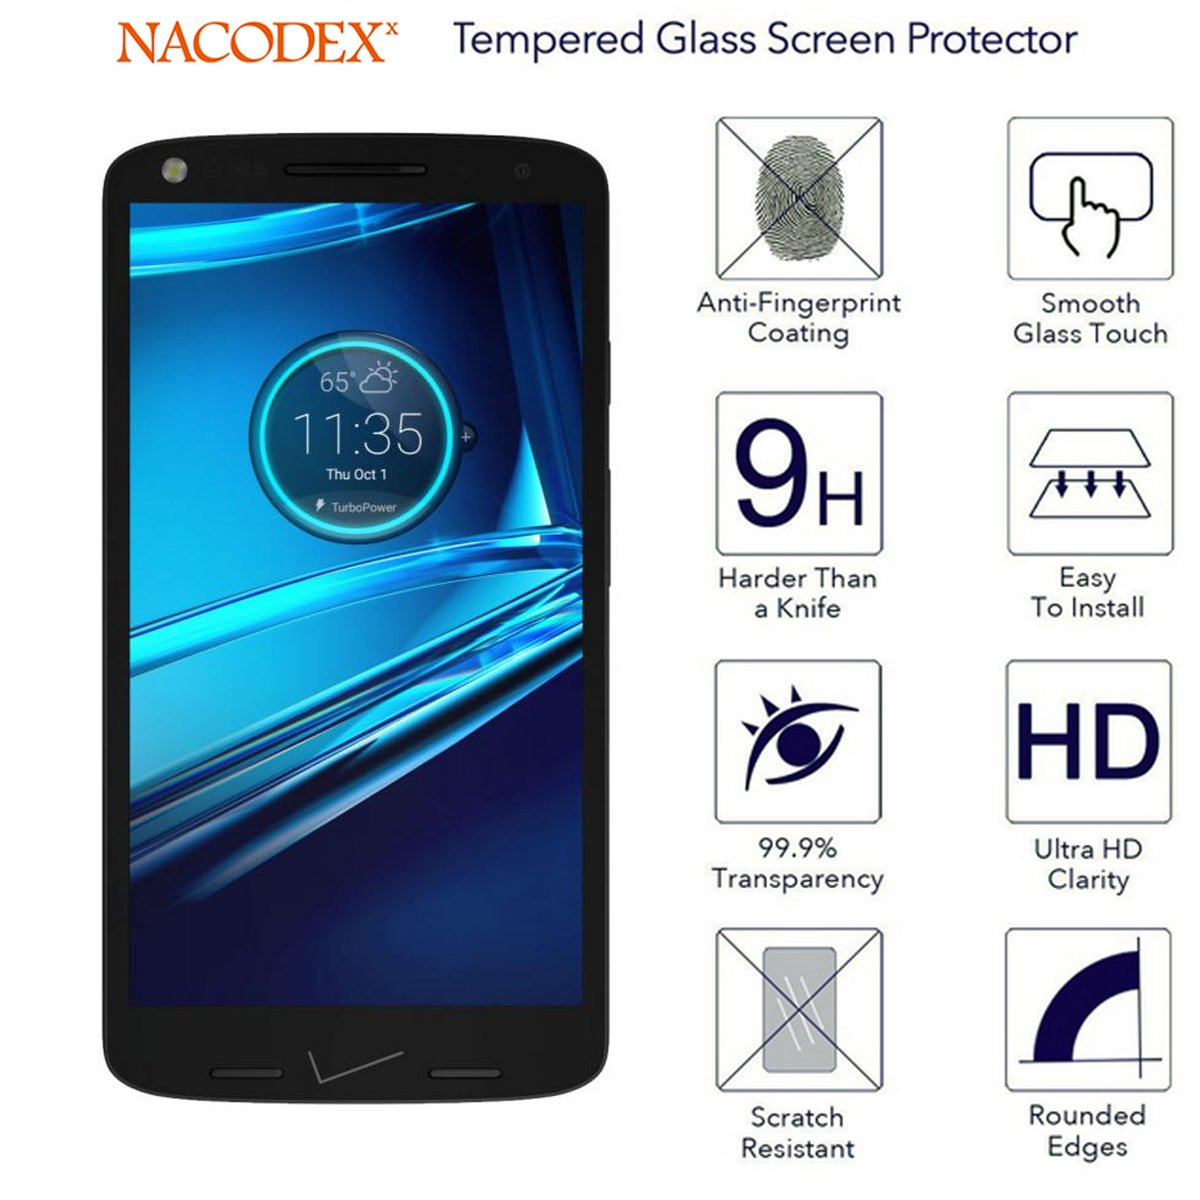 3x Moto Droid Turbo 2 Screen Protector, (3-Pack) Nacodex® Tempered Glass For Motorola Droid Turbo 2 Glass Screen Protector , 0.3mm Screen Protection (For ...